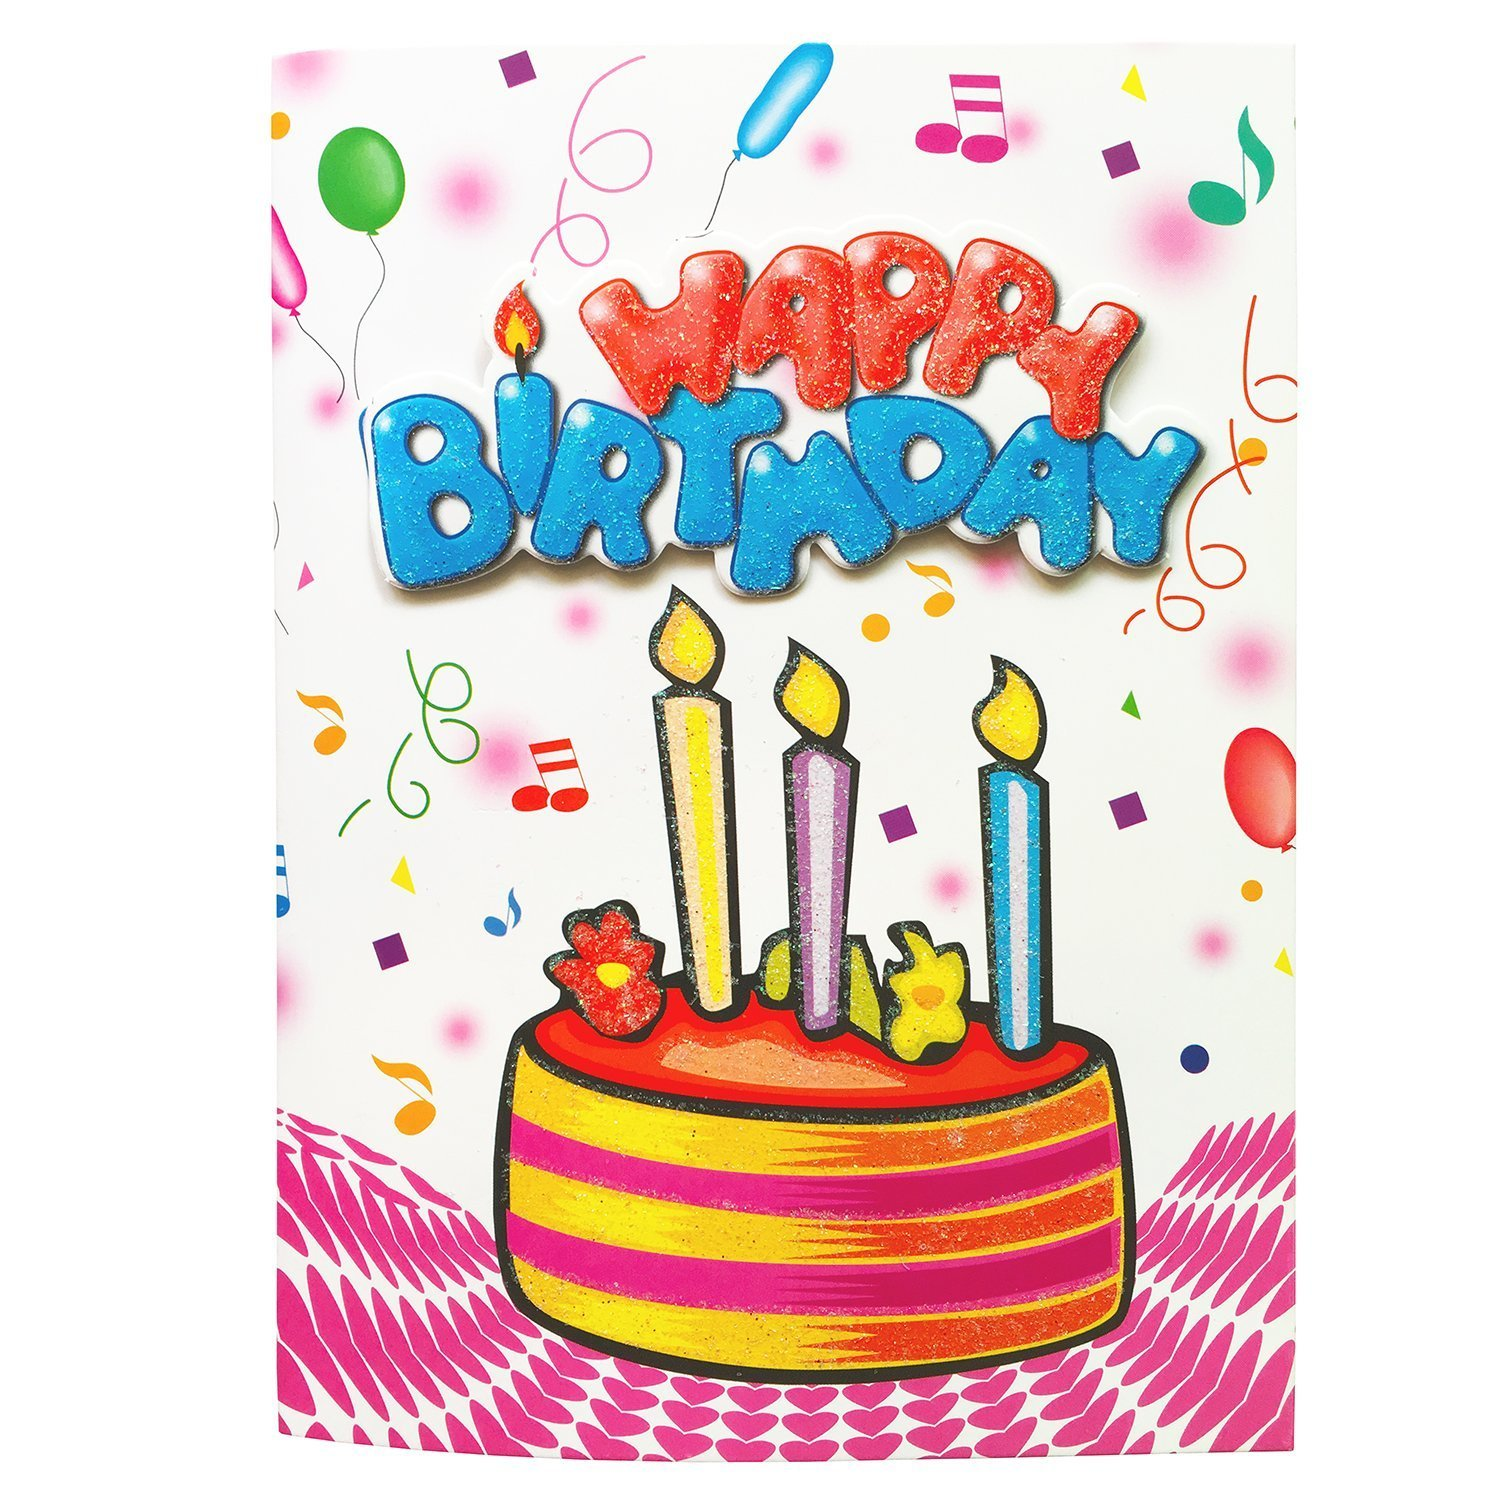 Free Interactive Birthday Cards Gallery Free Birthday Cards